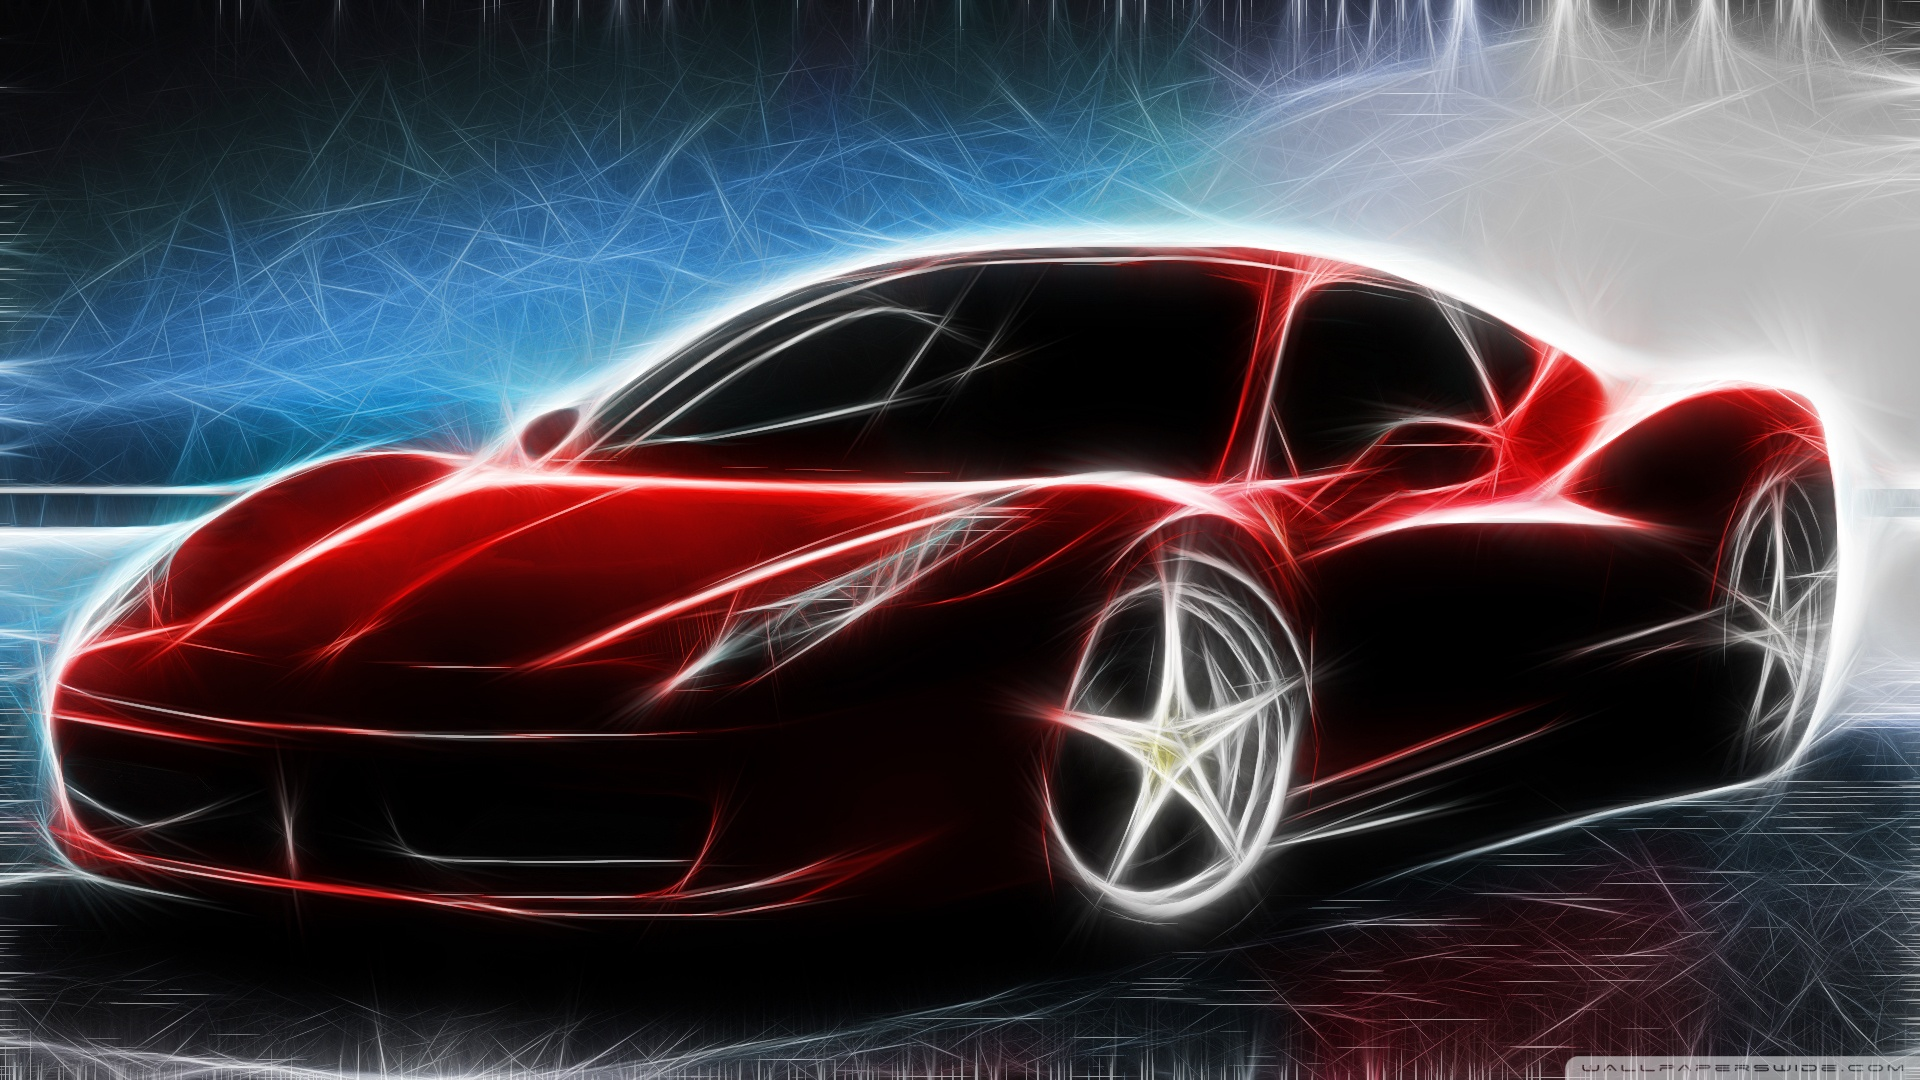 Coolest Collection of Ferrari Wallpaper \u0026 Backgrounds In HD